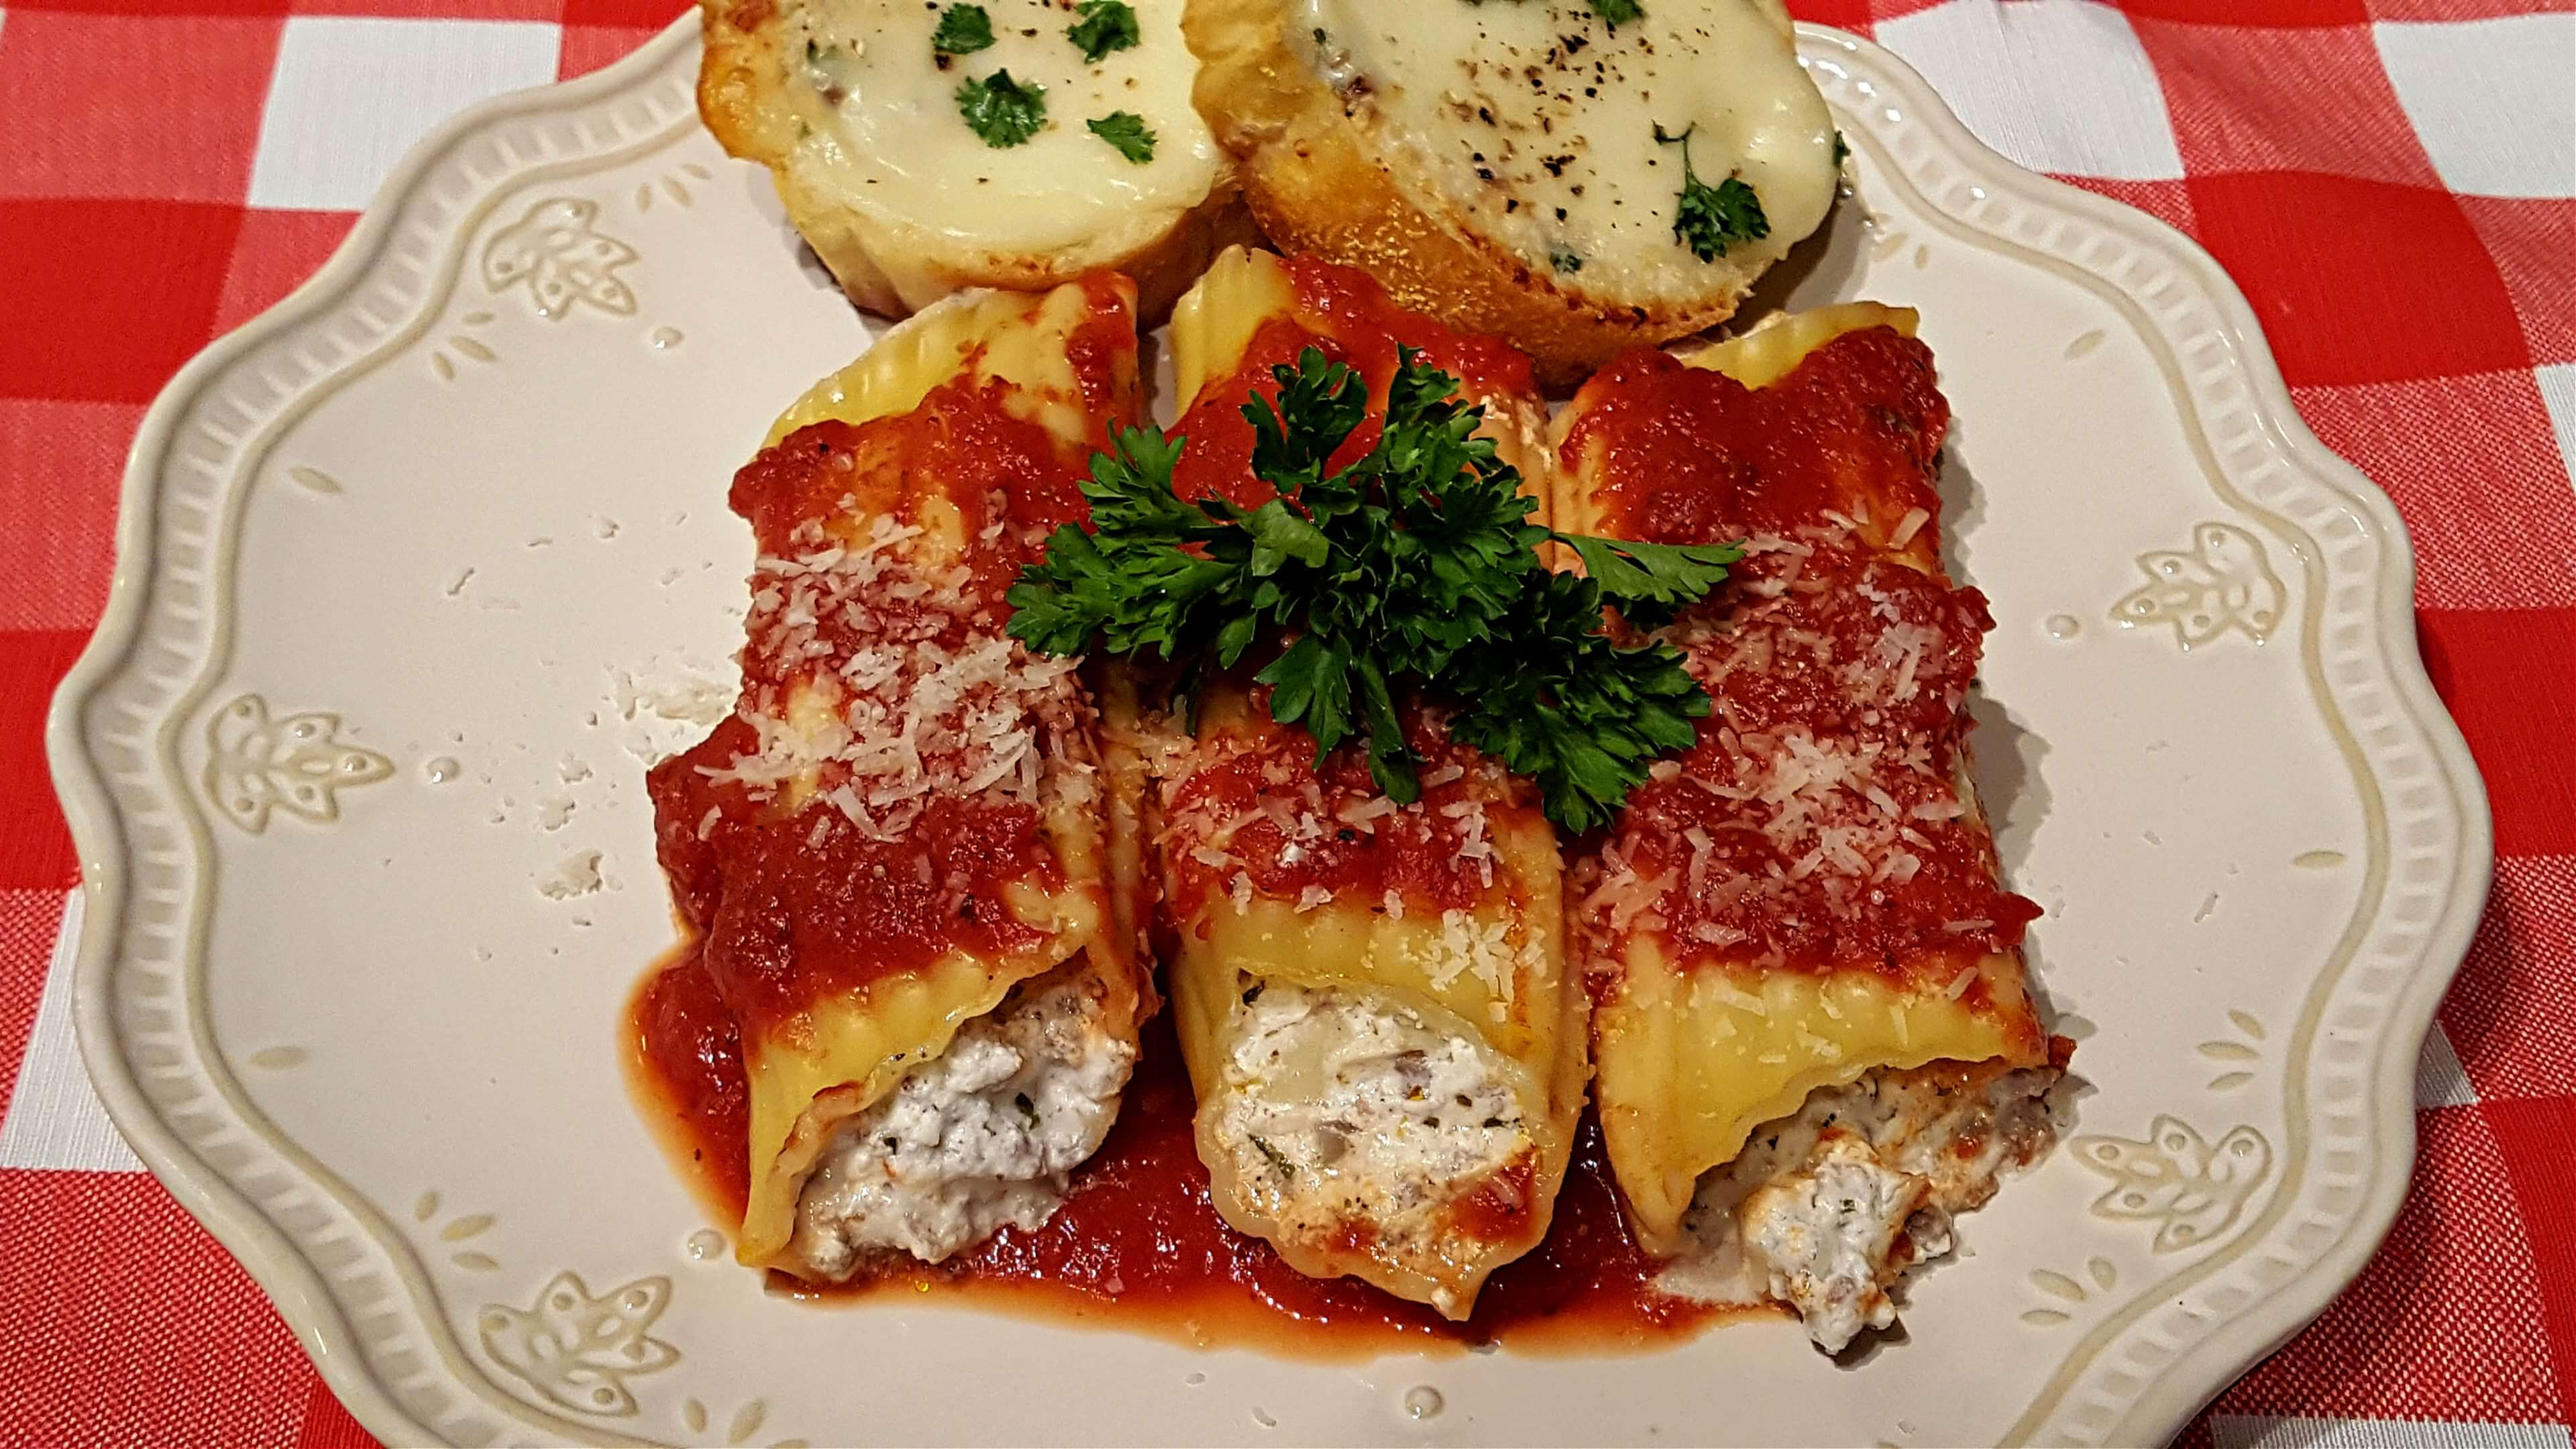 Beef manicotti with red sauce on a plate with a side of garlic cheese toast